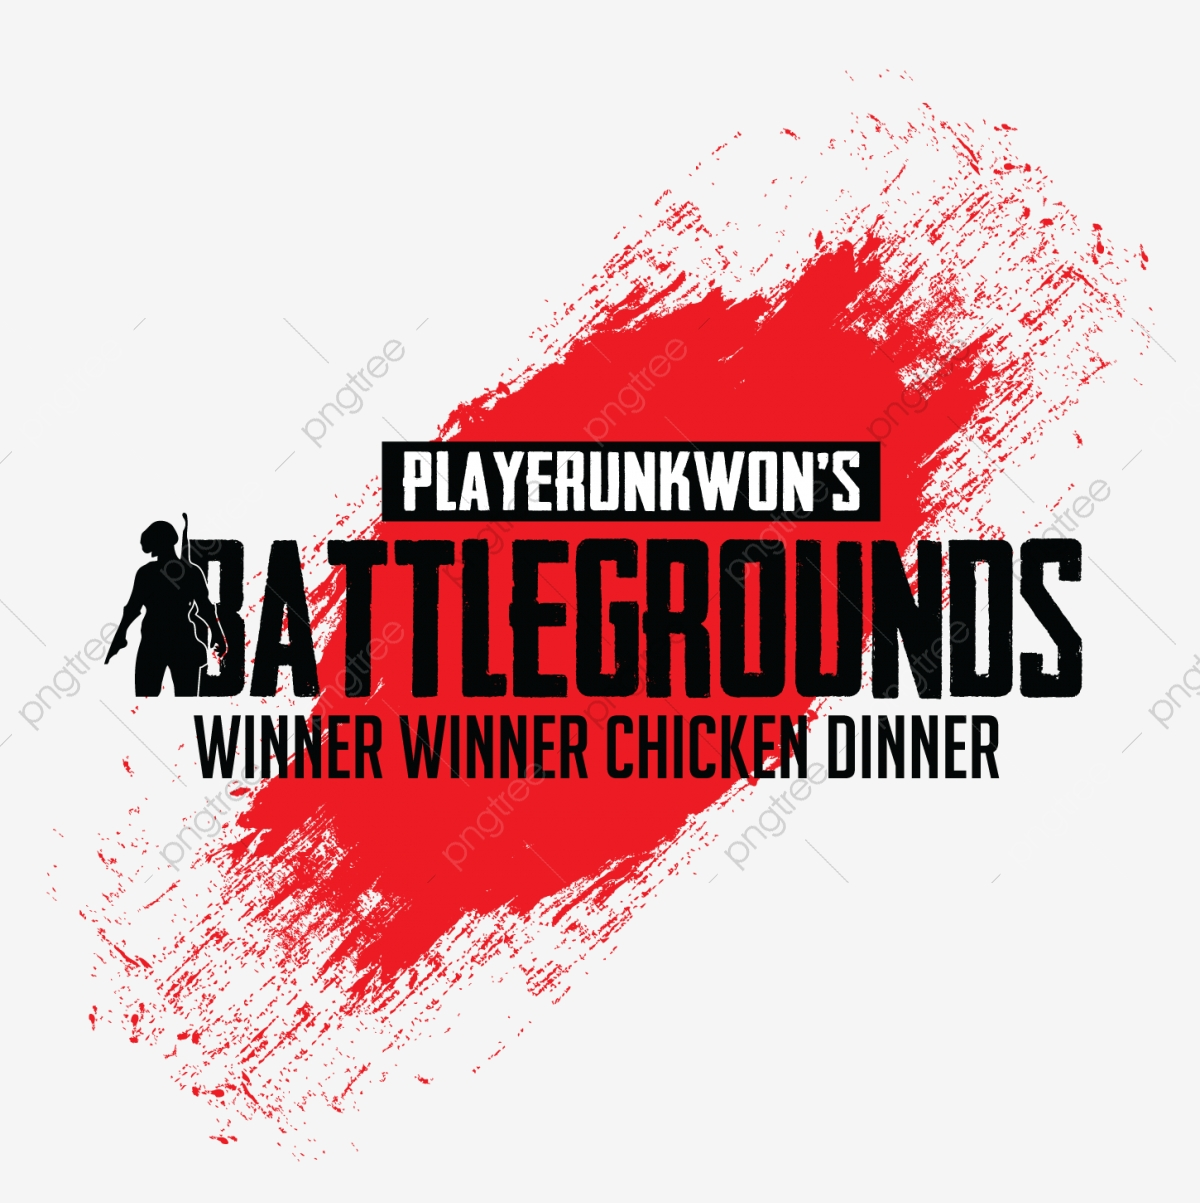 Pubg Logo Brush Brush Red Red Brush Png And Vector With